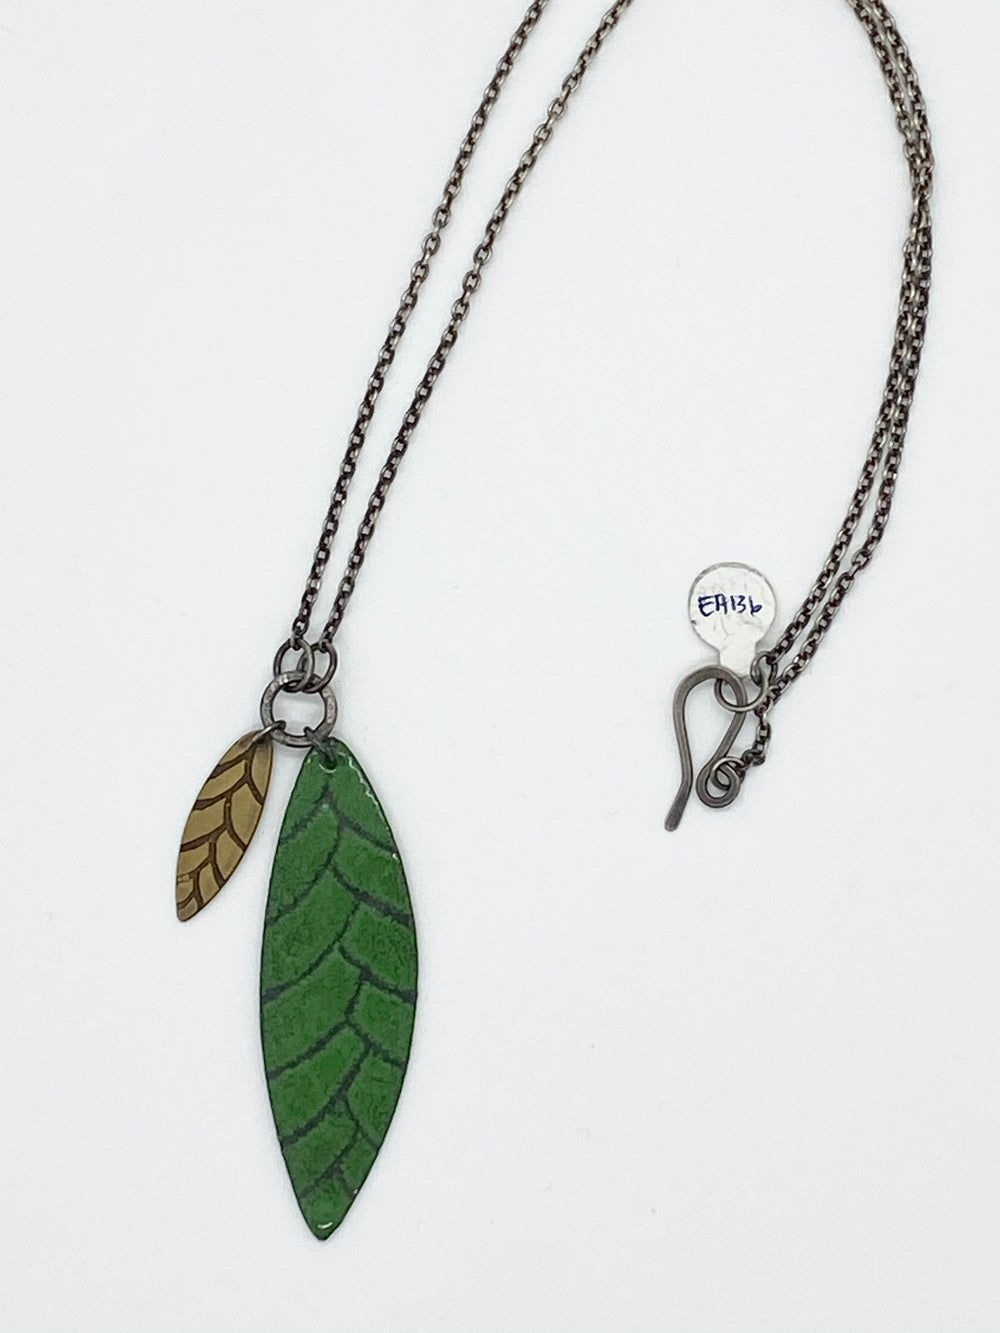 Erin Austin necklace, #136/137 Green Cone/Leaf pendant